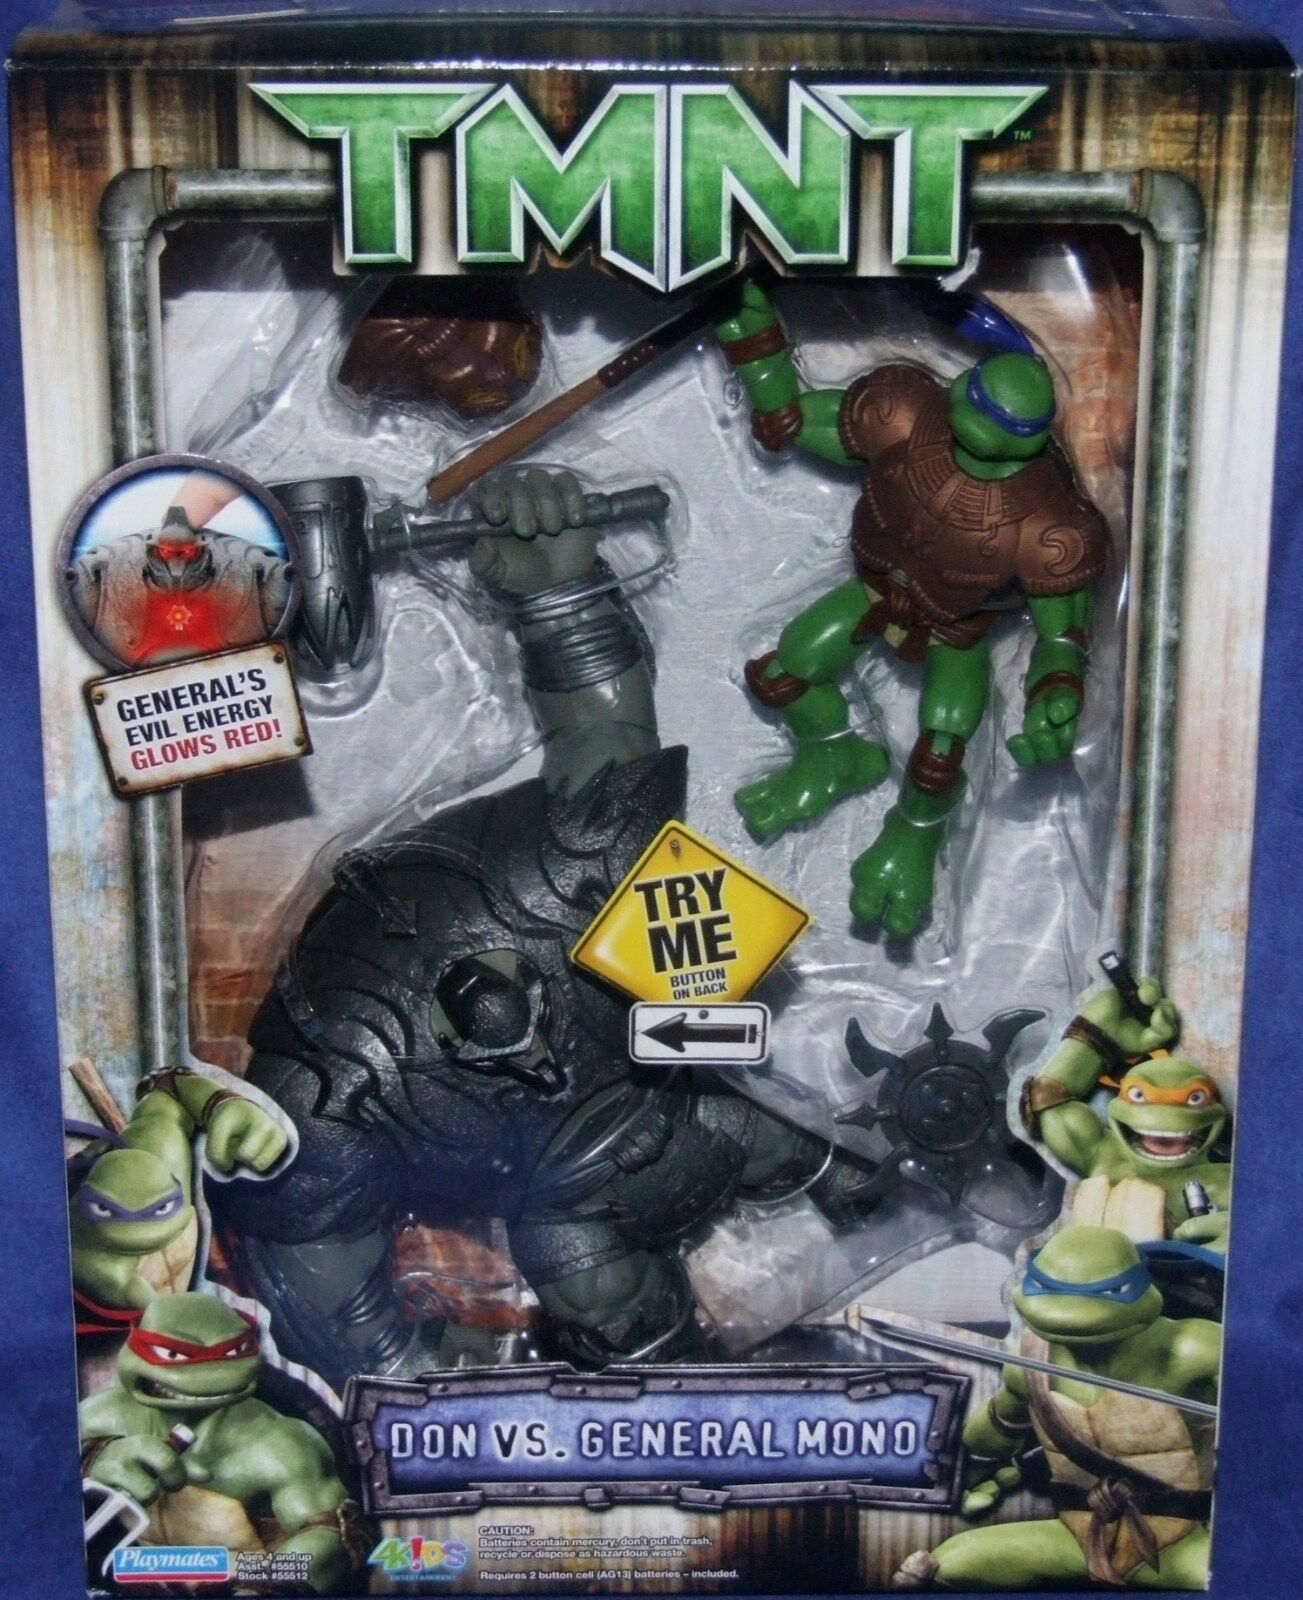 Teenage Mutant Ninja Turtles The Movie Don vs GENERAL Mono New Donatello 2006